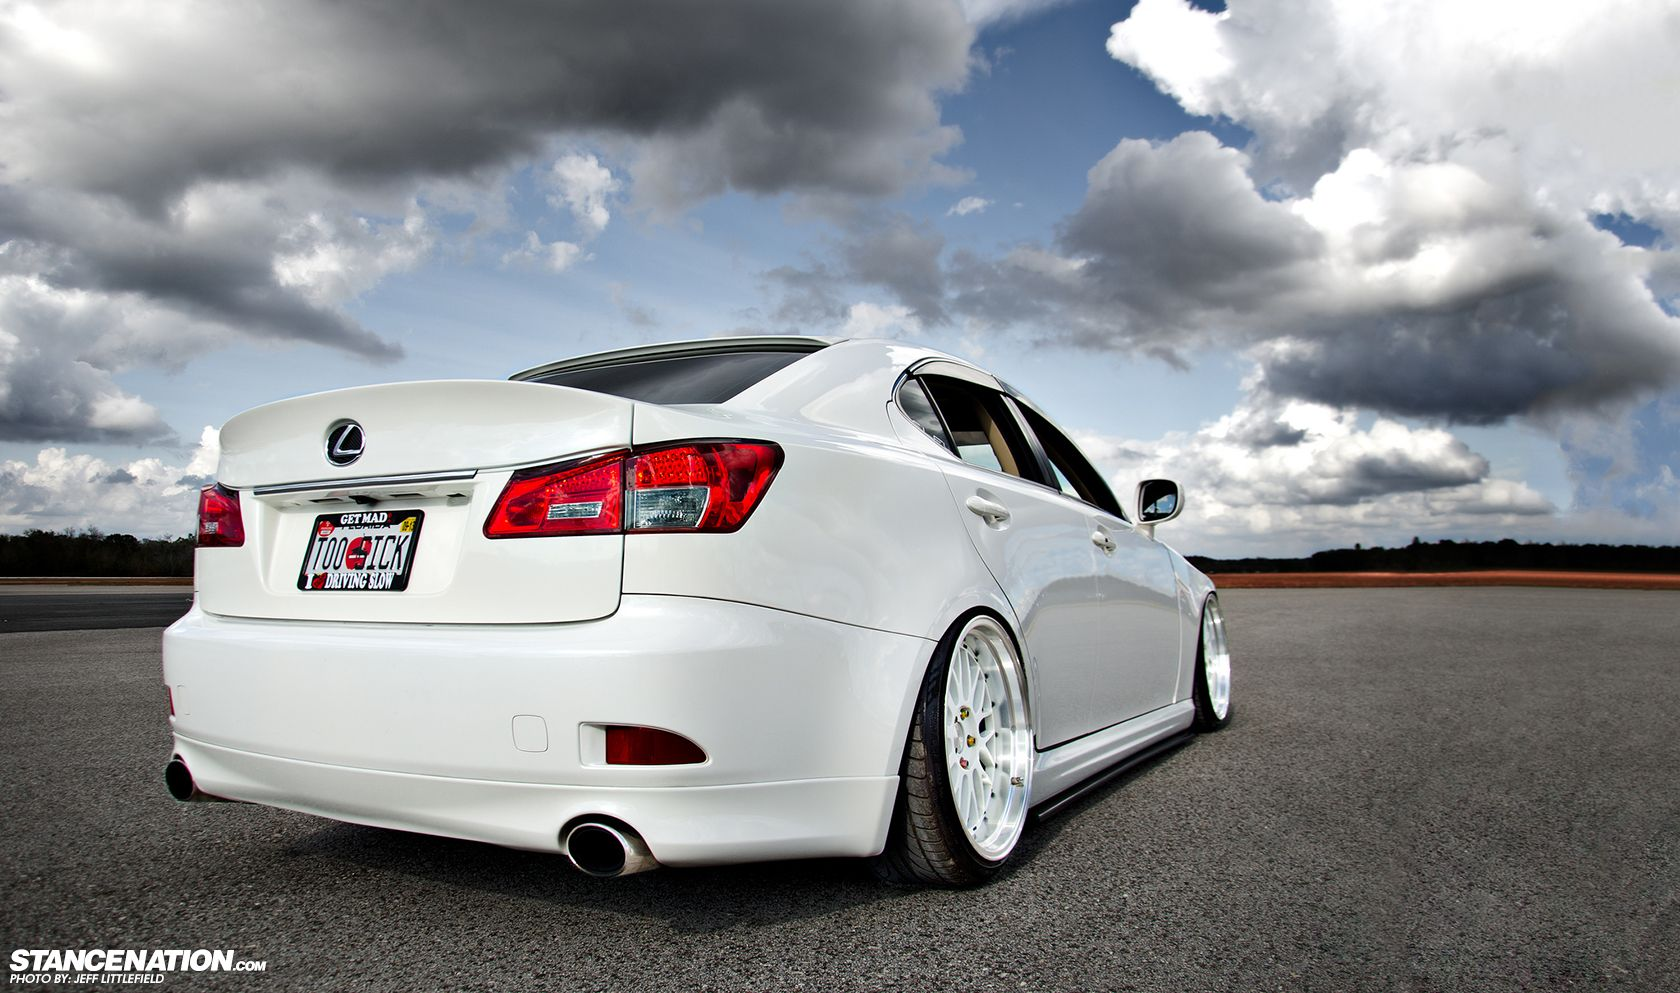 IS with some sick Stance Lexus models, Lexus cars